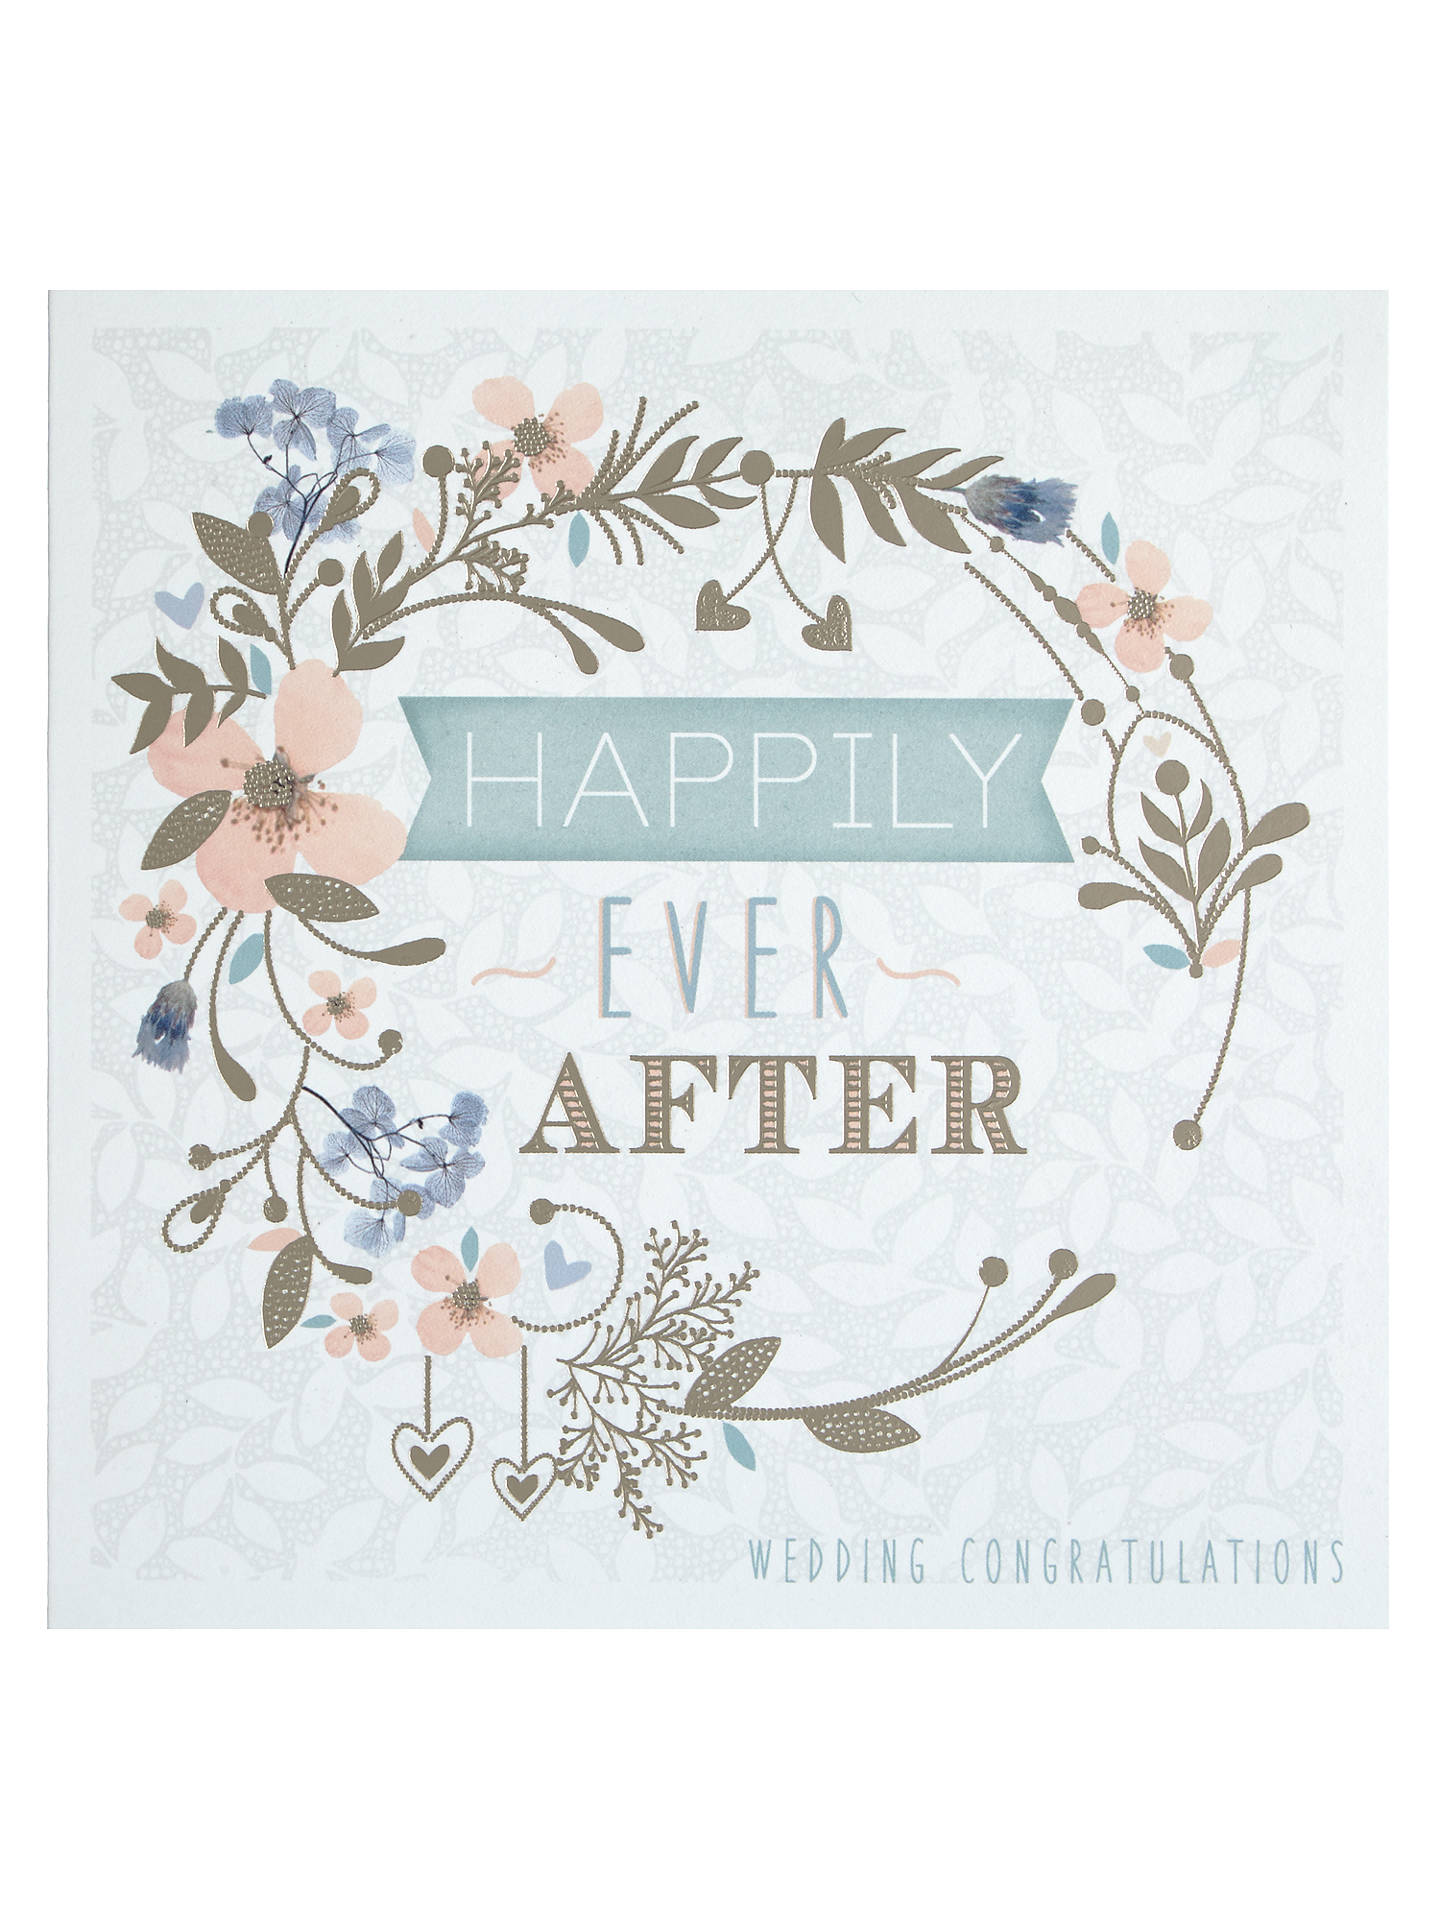 Happily Ever After Floral Circle Wedding Congratulations Card At